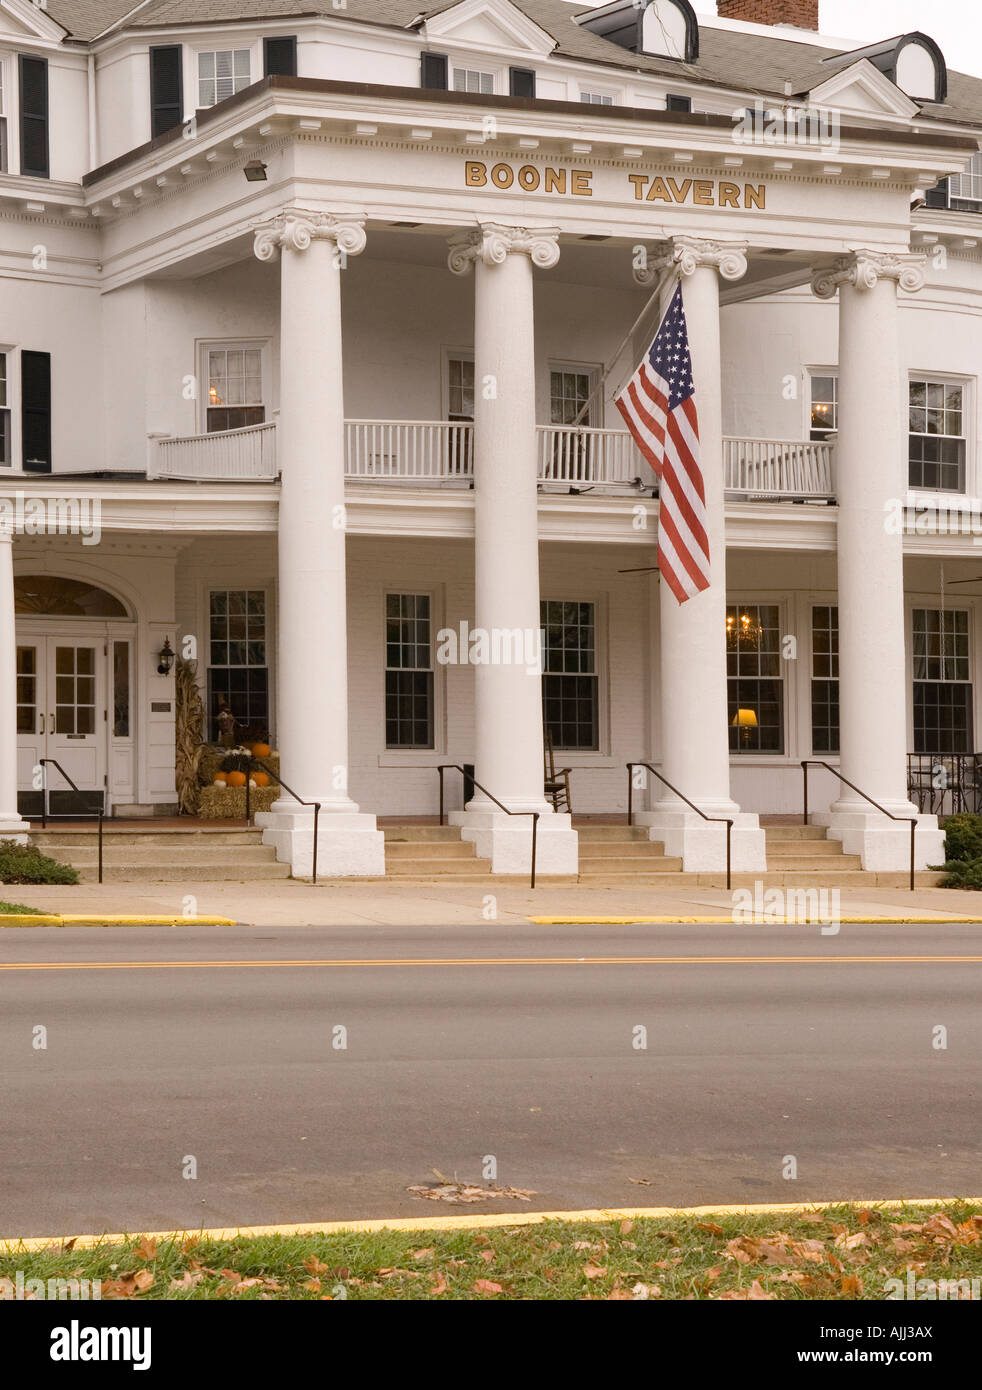 Boone Tavern Hotel And Restaurant In Berea Kentucky Usa